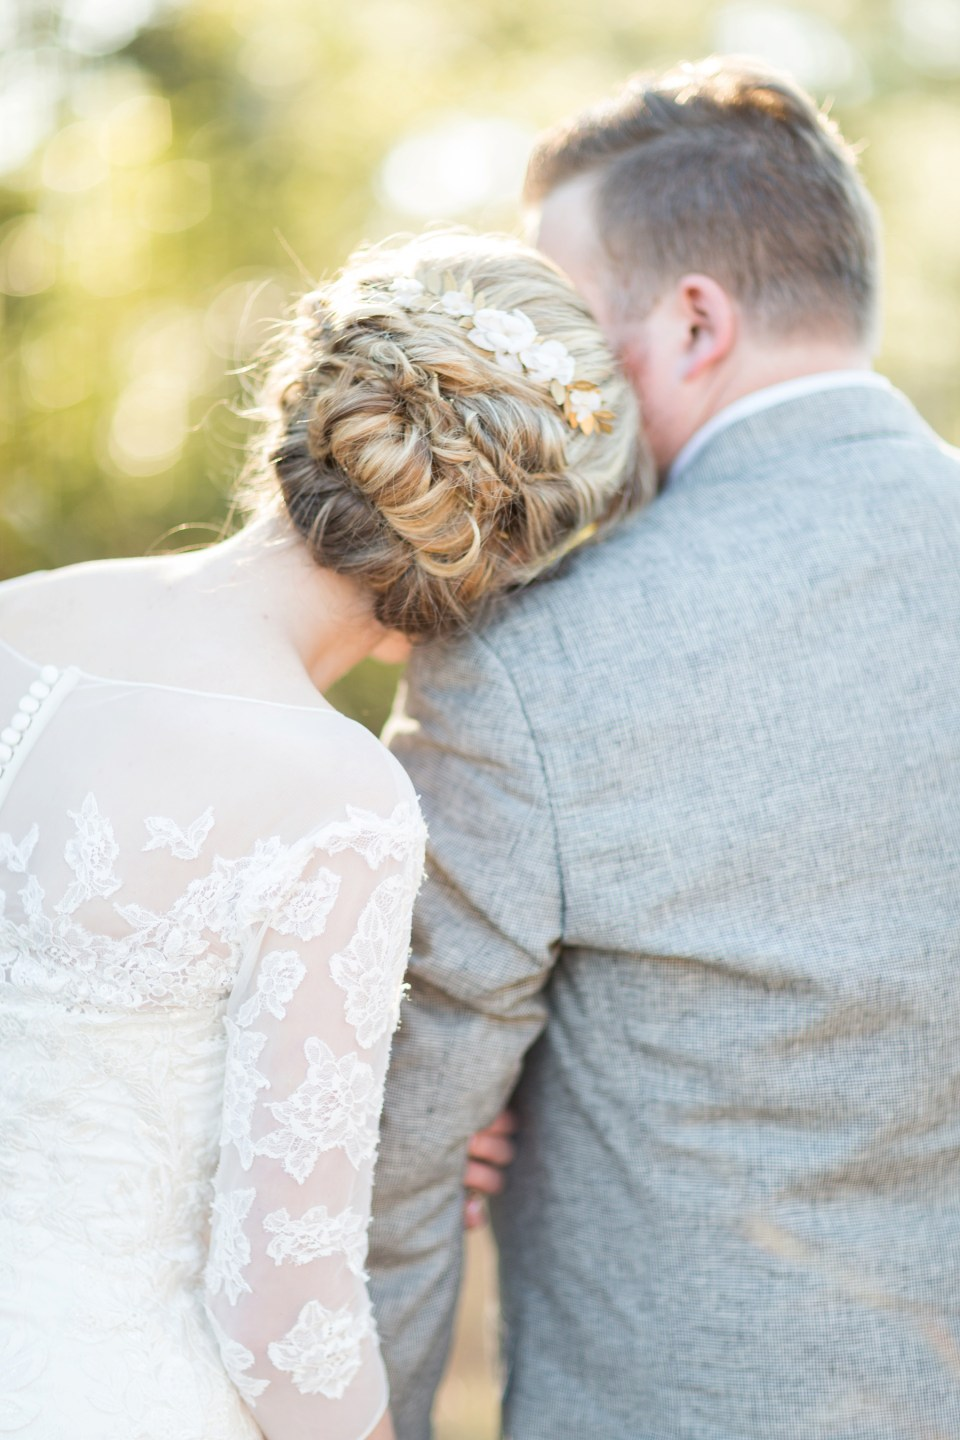 Backyard Ocala Wedding - Bri Cibene PhotographyBri Cibene Photography